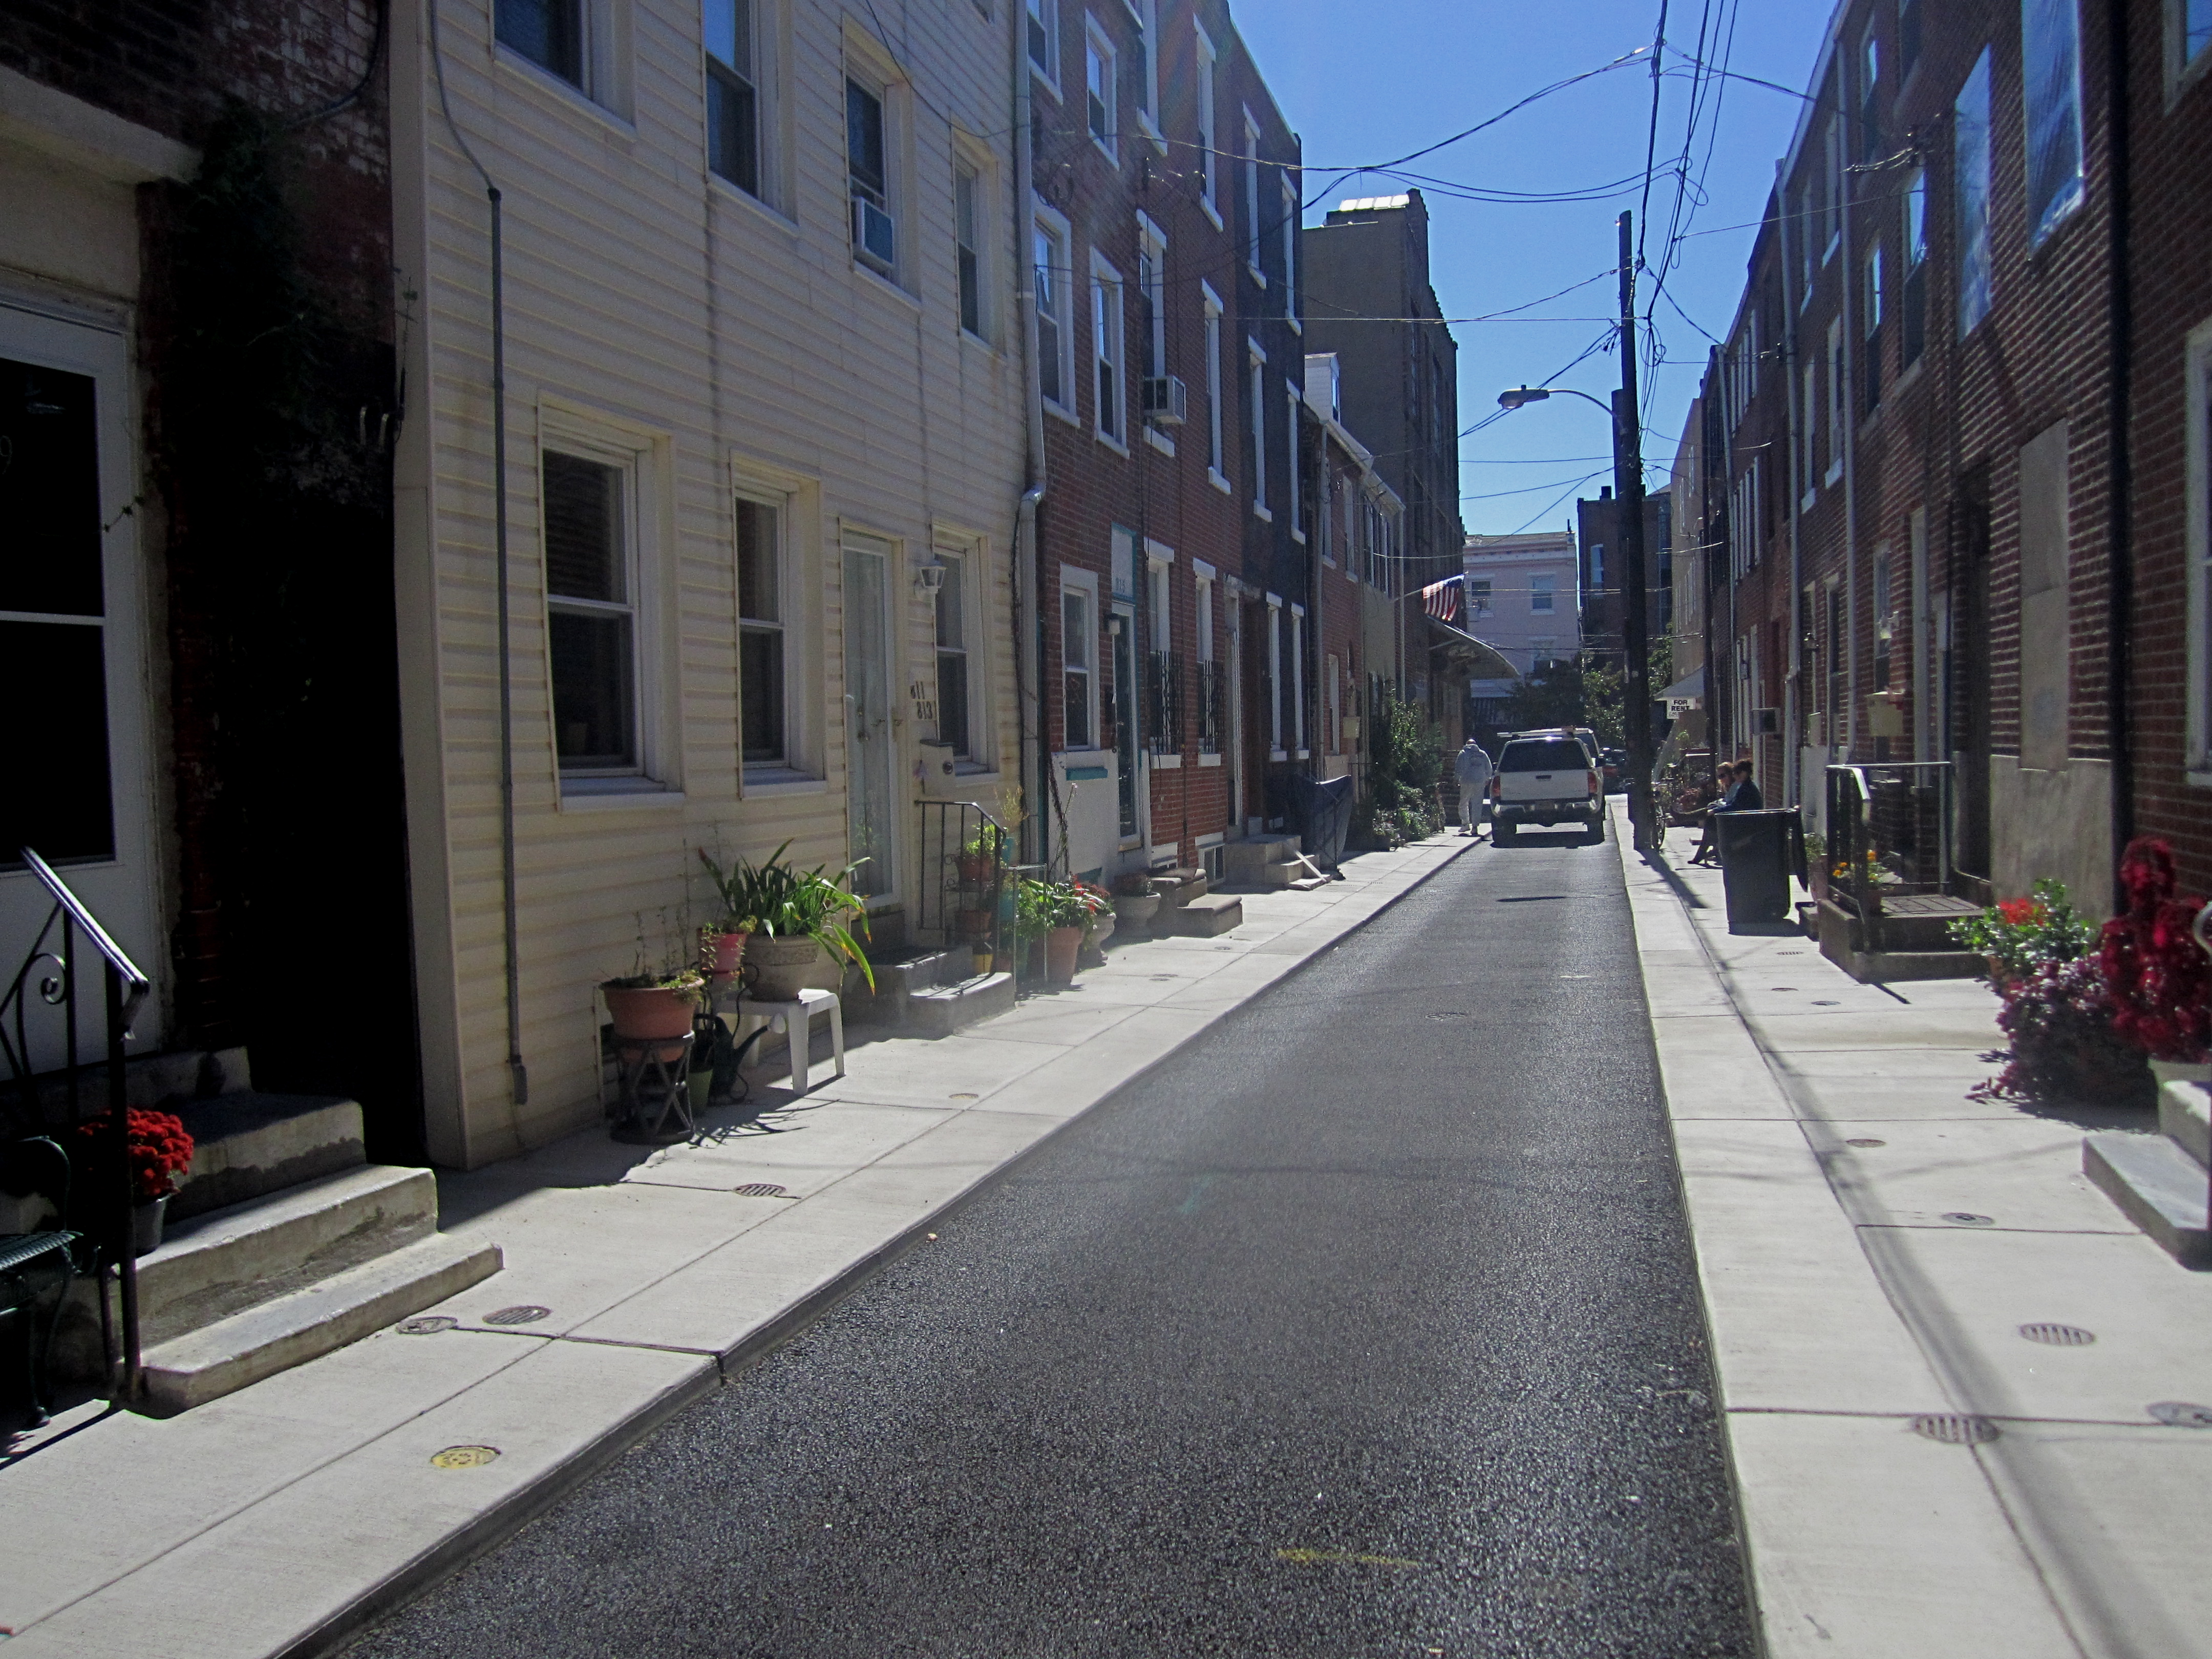 Percy Street is paved with porous asphalt which feeds into a stone bed below